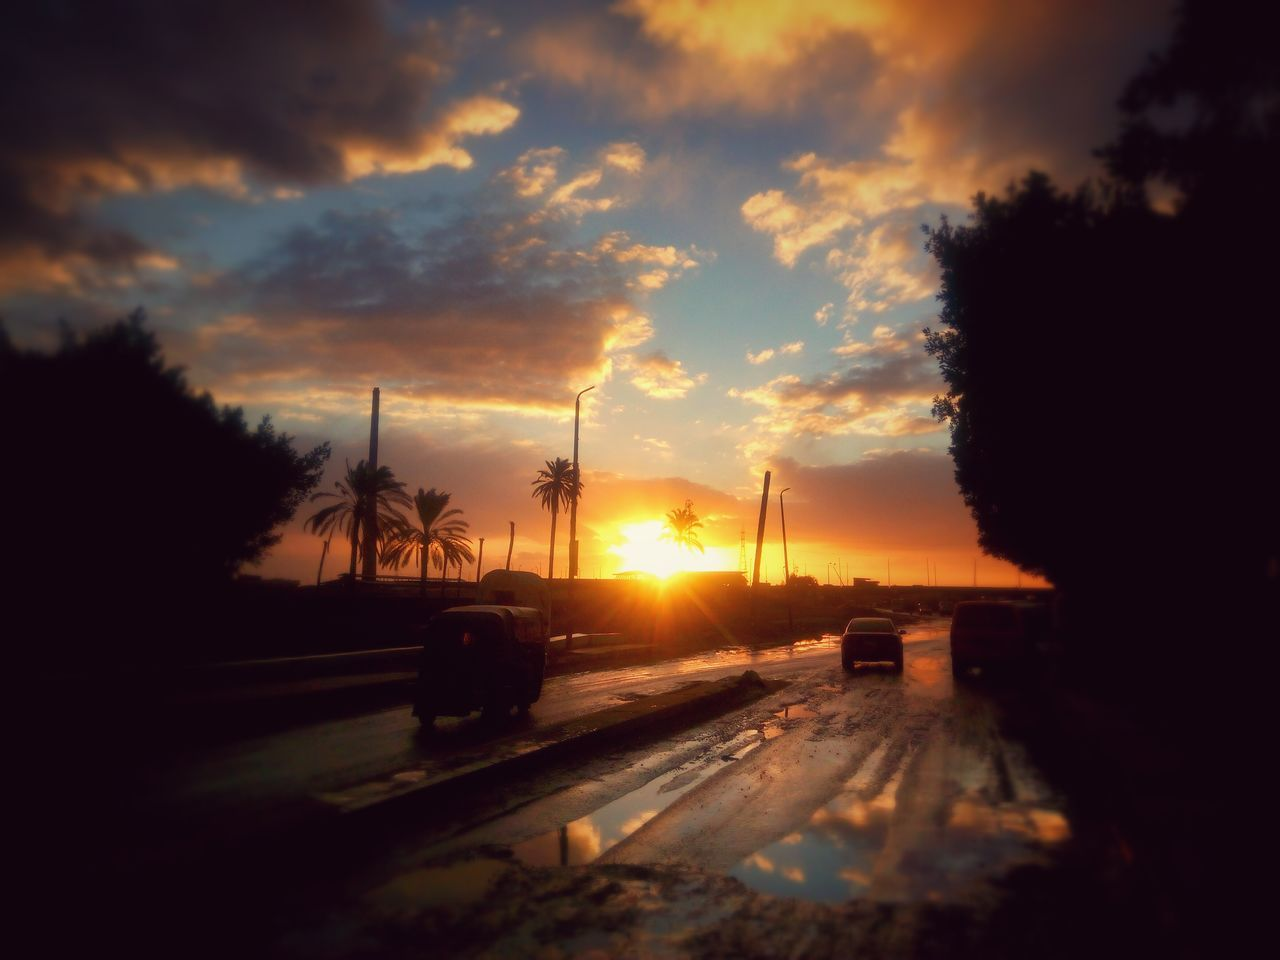 EyeEmNewHere Photography Sky Streetphotography Sun Sky And Clouds Ey